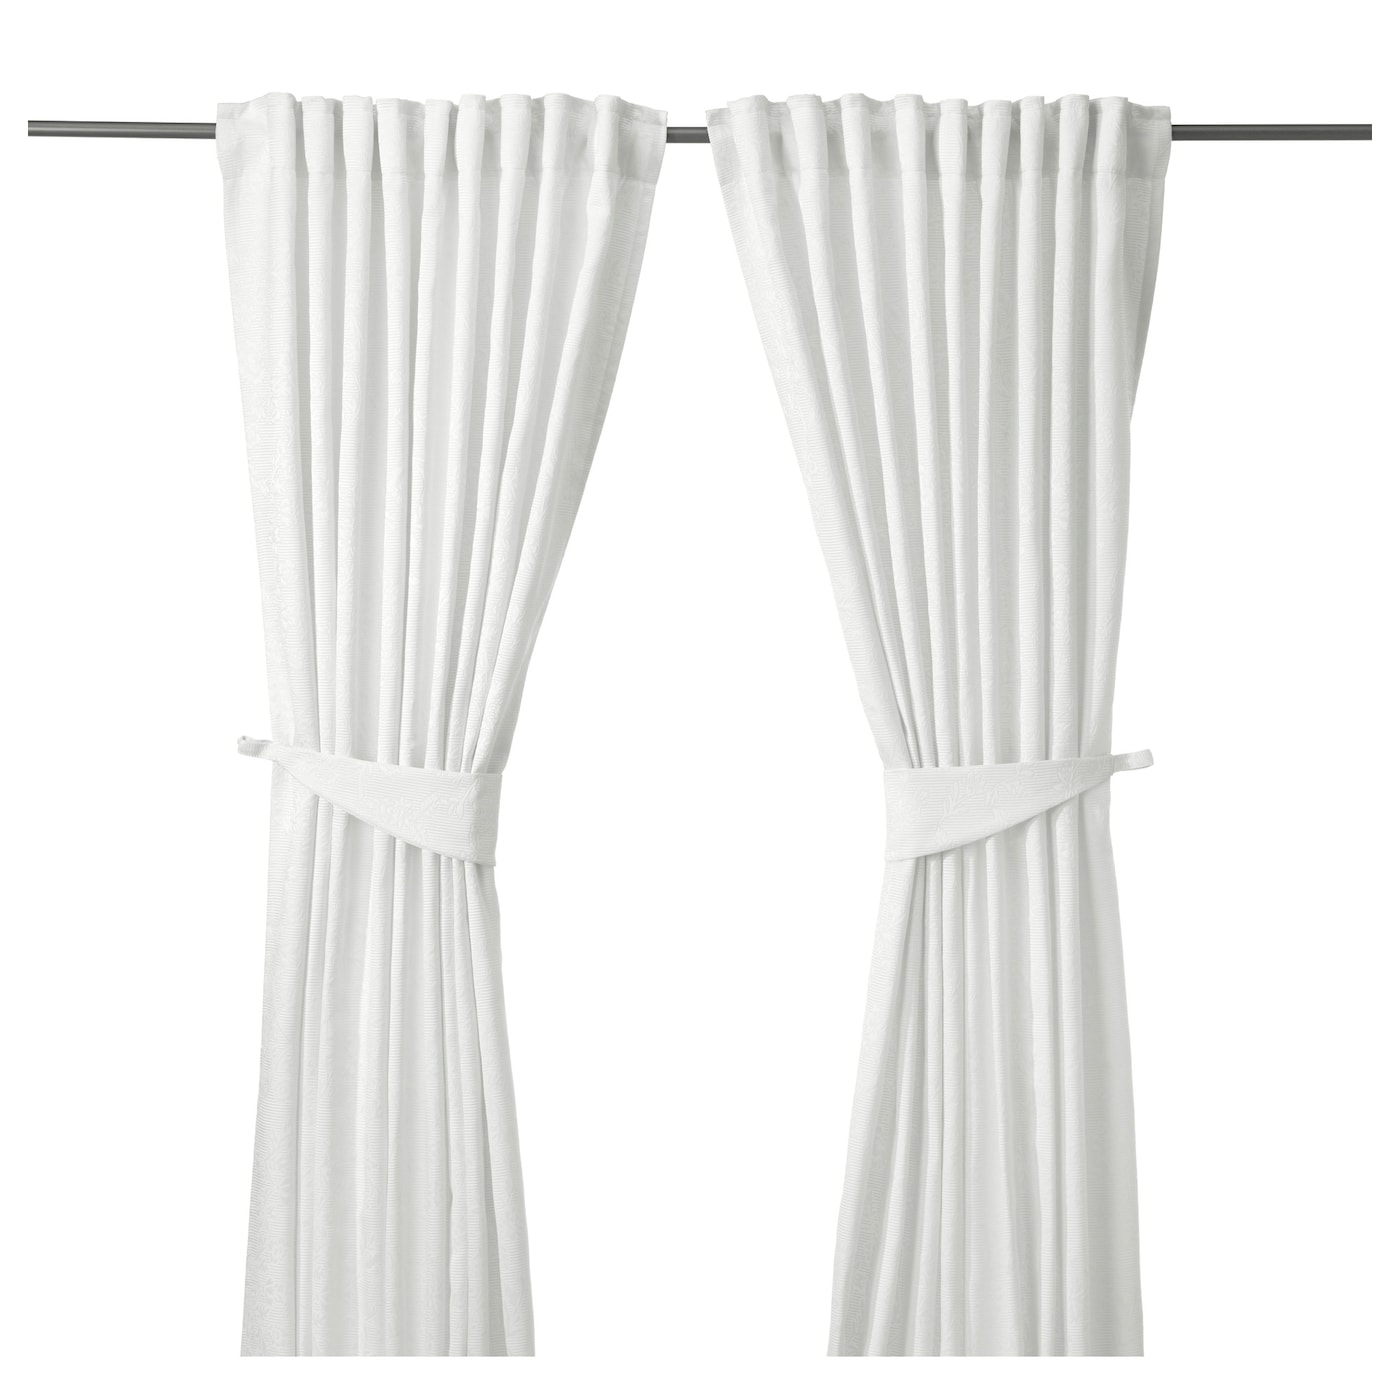 blekviva curtains with tie backs 1 pair white 145x250 cm ikea. Black Bedroom Furniture Sets. Home Design Ideas